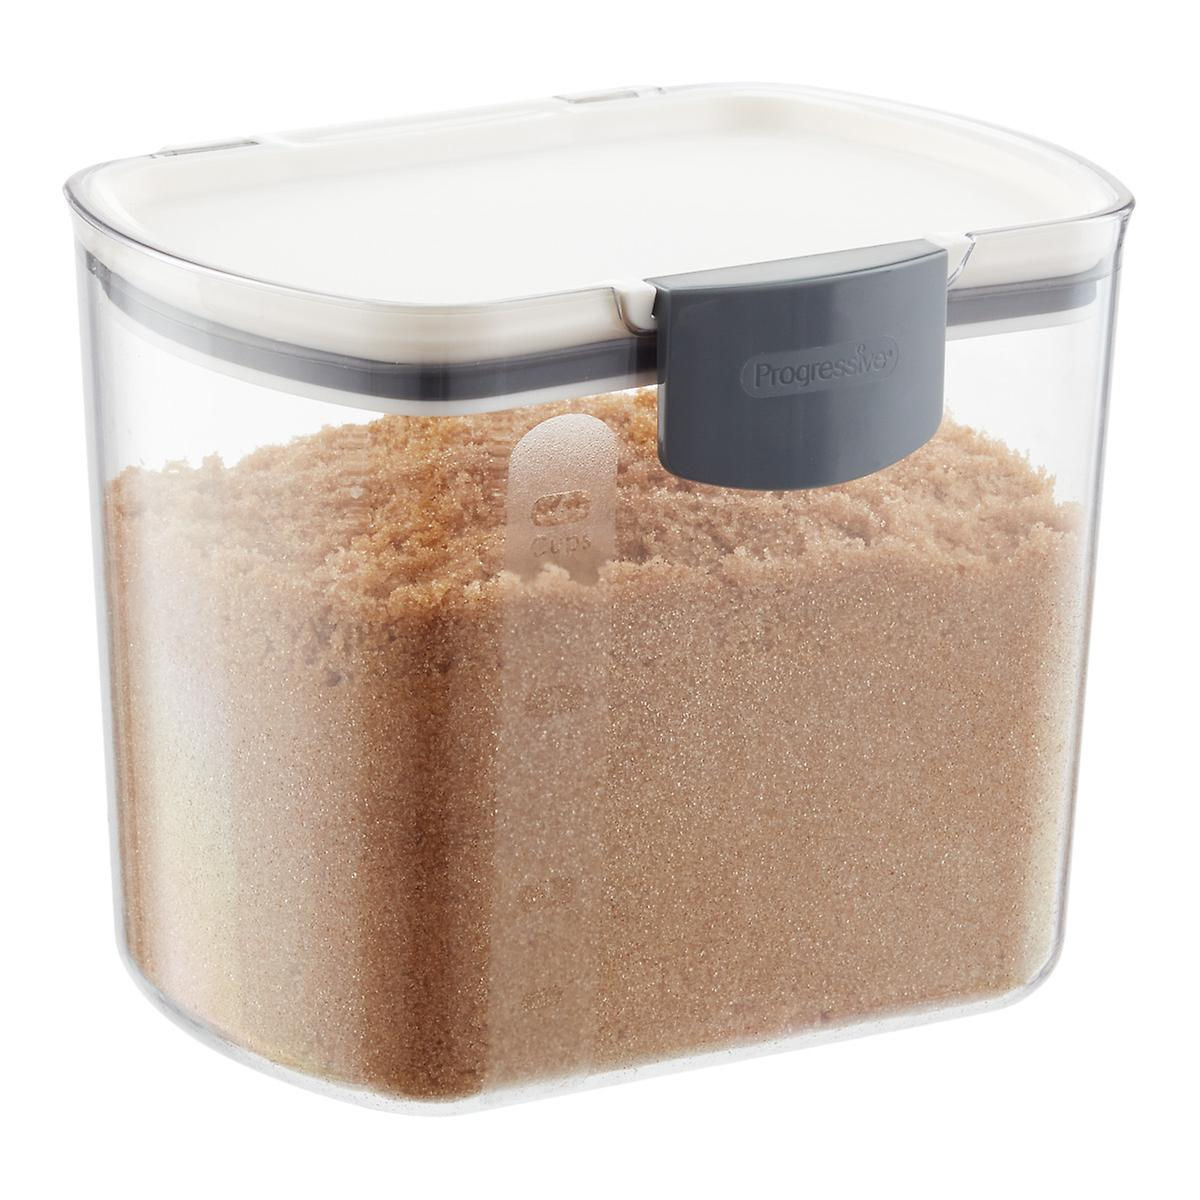 ProKeeper 1.5 qt. Brown Sugar Container